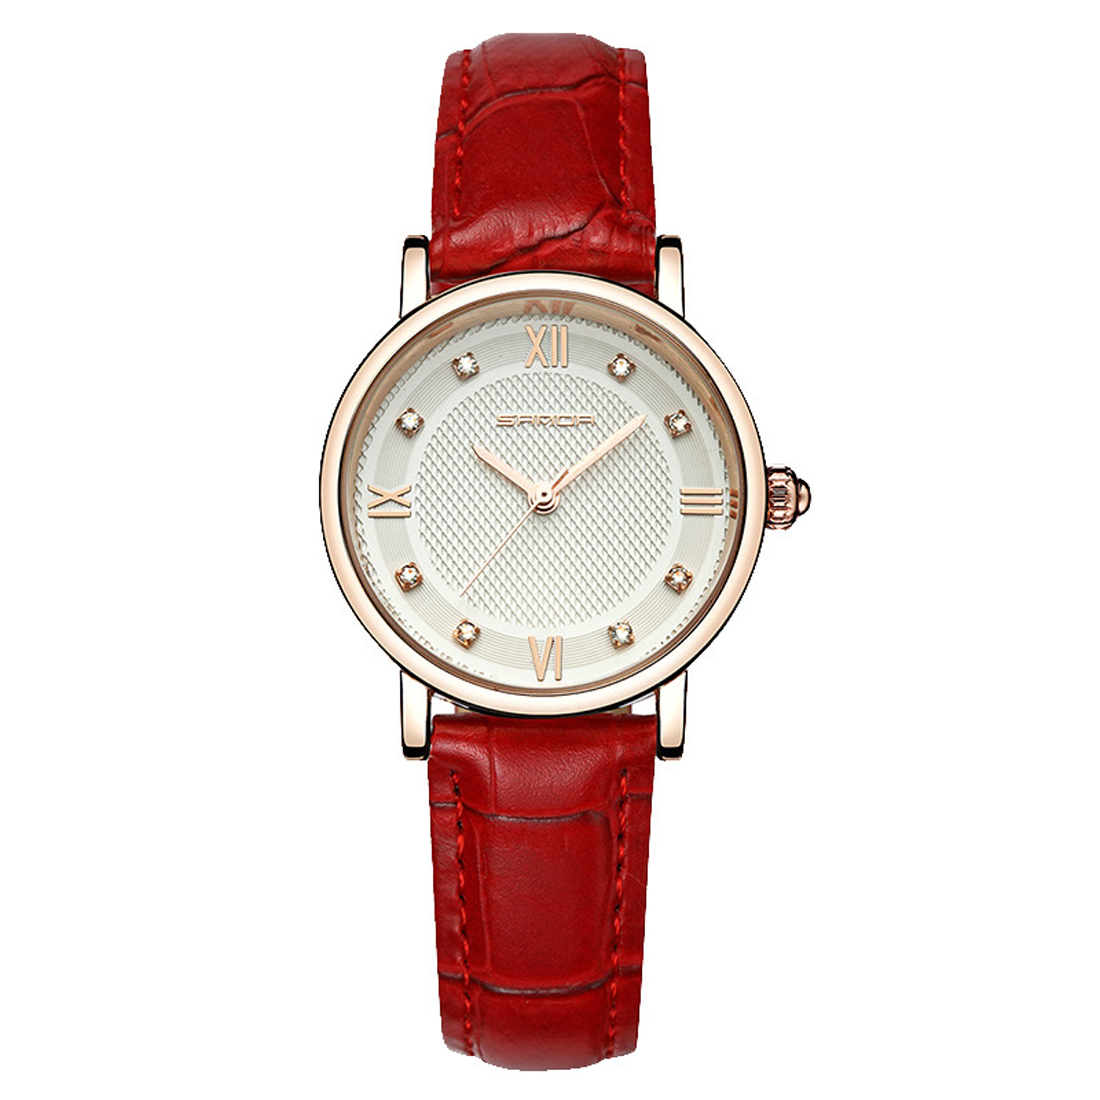 red-women-rhinestones-watch-leather-business-quartz-relogio-feminino-ladies-font-b-rosefield-b-font-watch-dress-dropship-2018-formal-clock